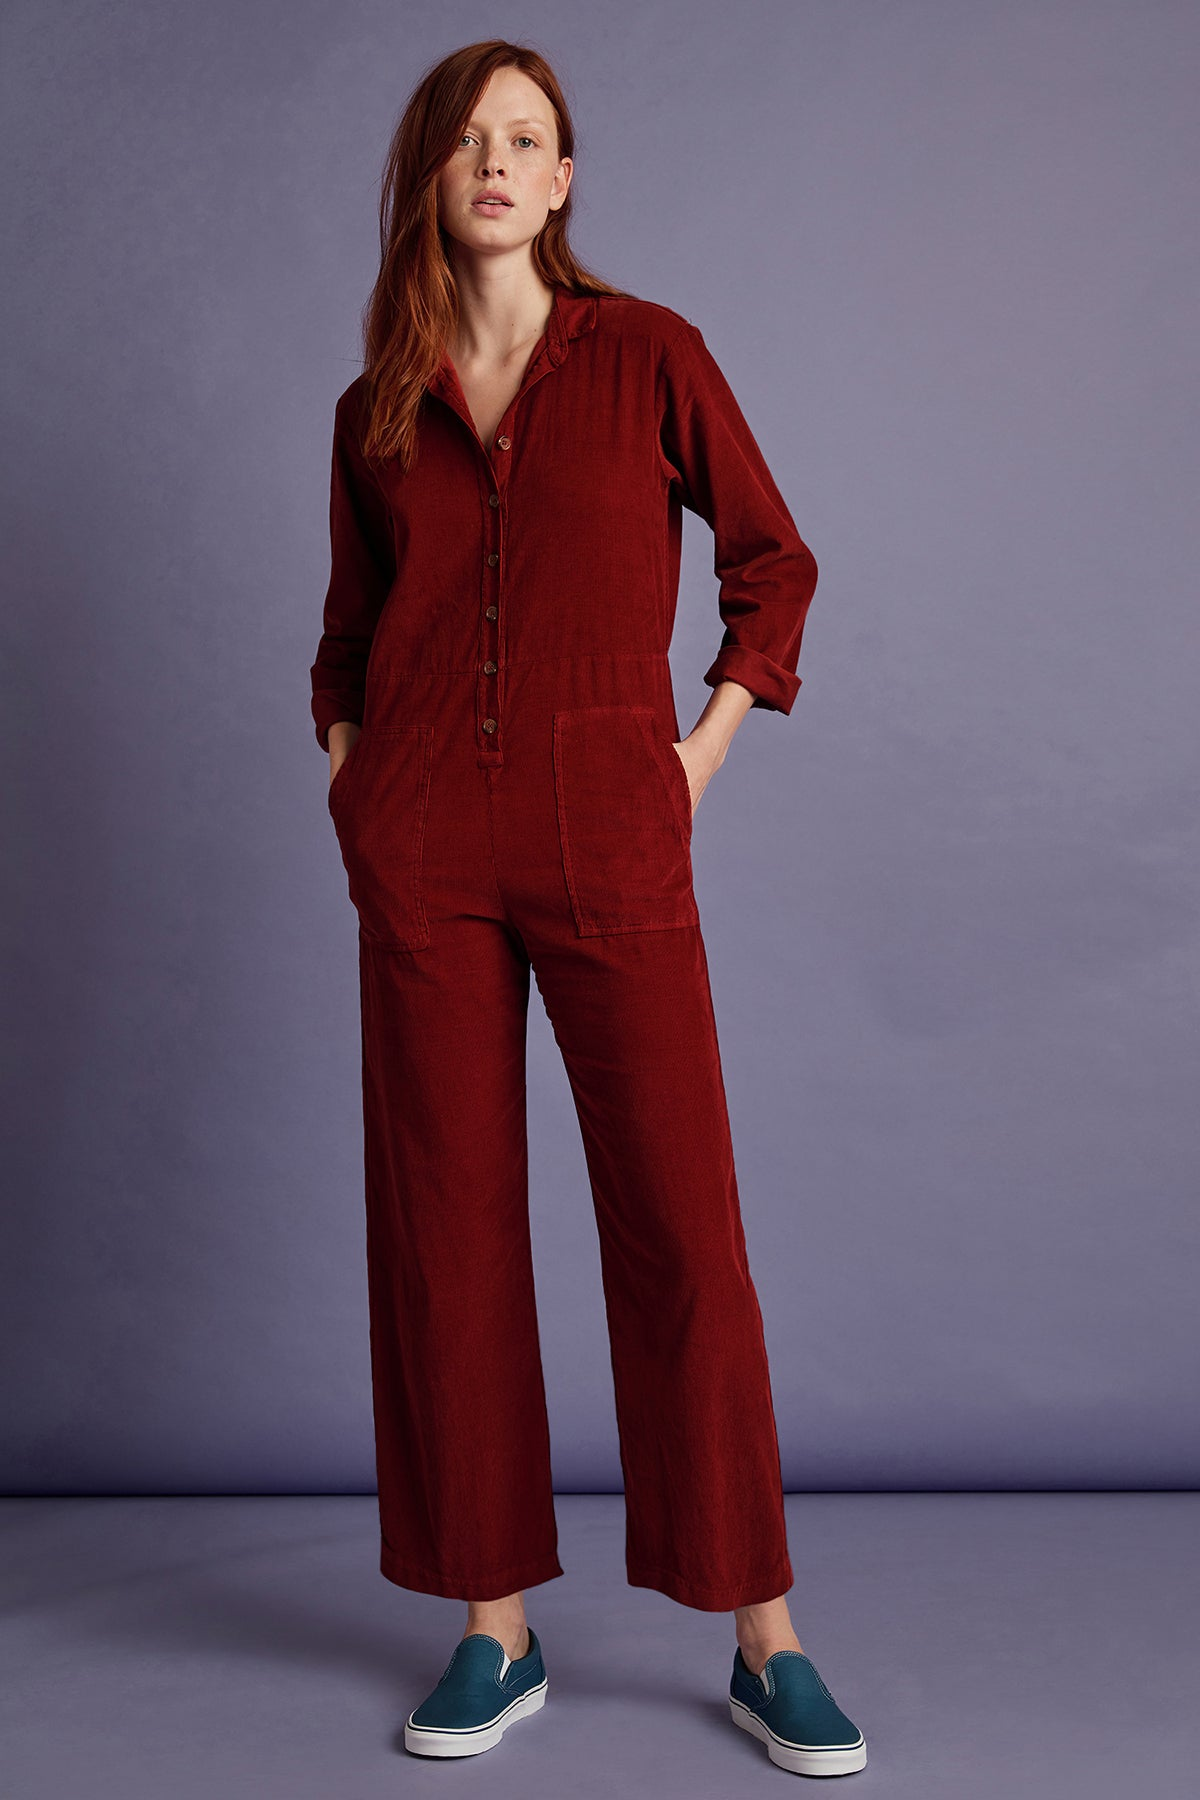 DELANEY CORDUROY LONG SLEEVE JUMPSUIT